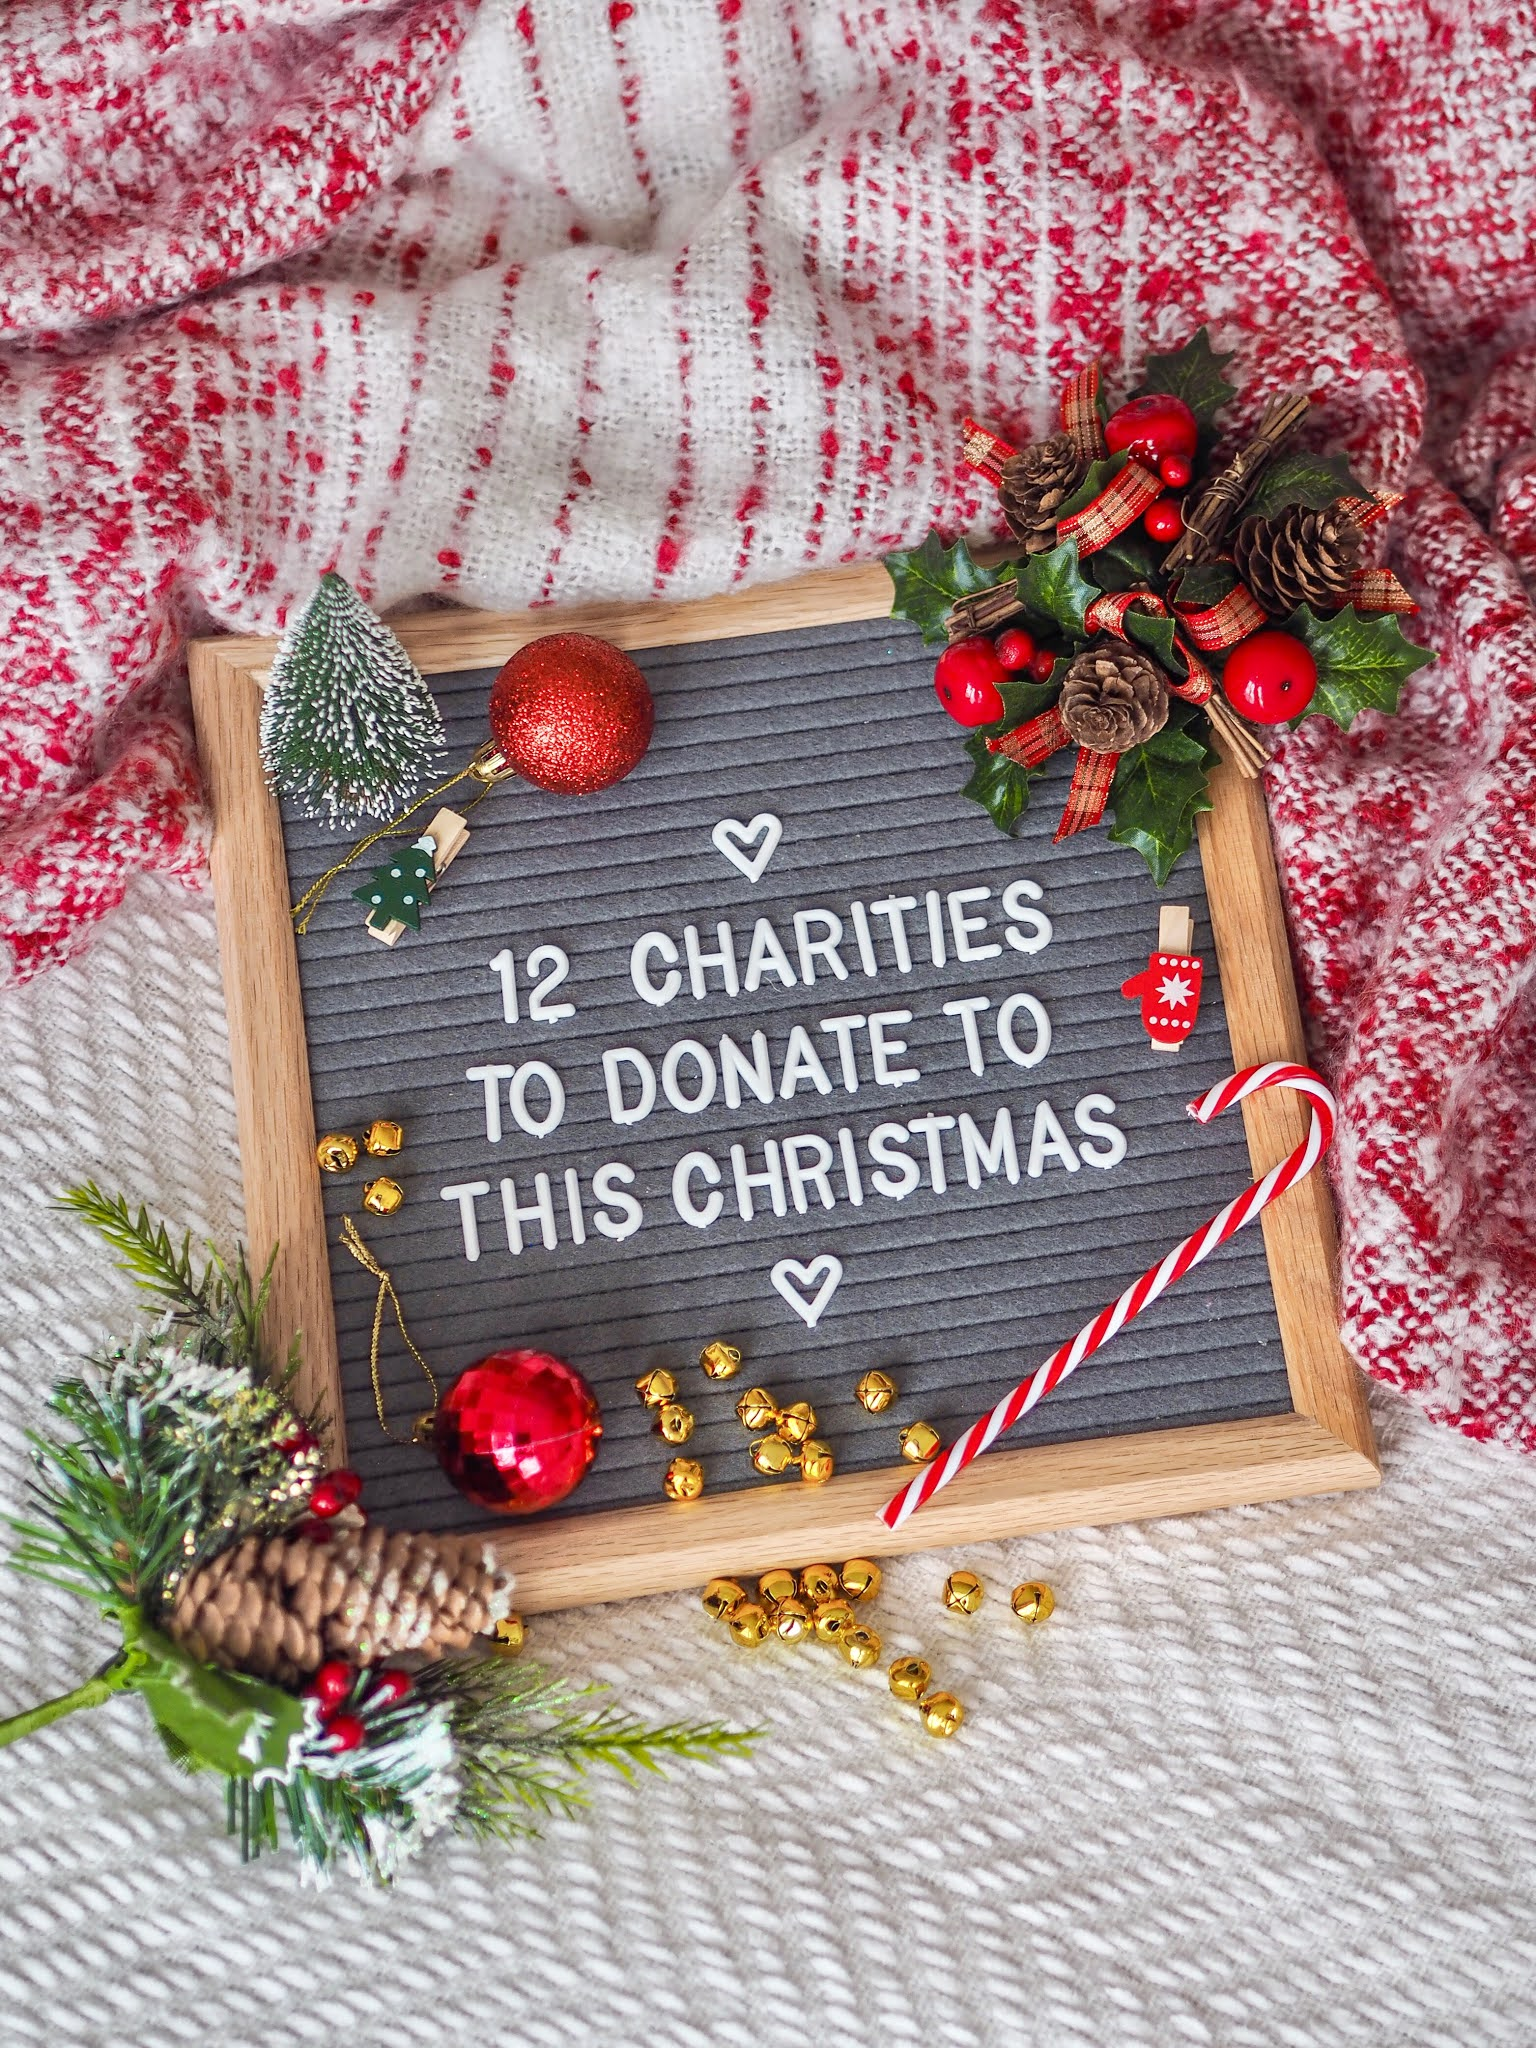 2 Charities To Donate To This Christmas 2020, UK Charities, Charity Support, Charity Donations, Katie Kirk Loves, UK Blogger, Christmas Flatlay, Letterboard Flatlay